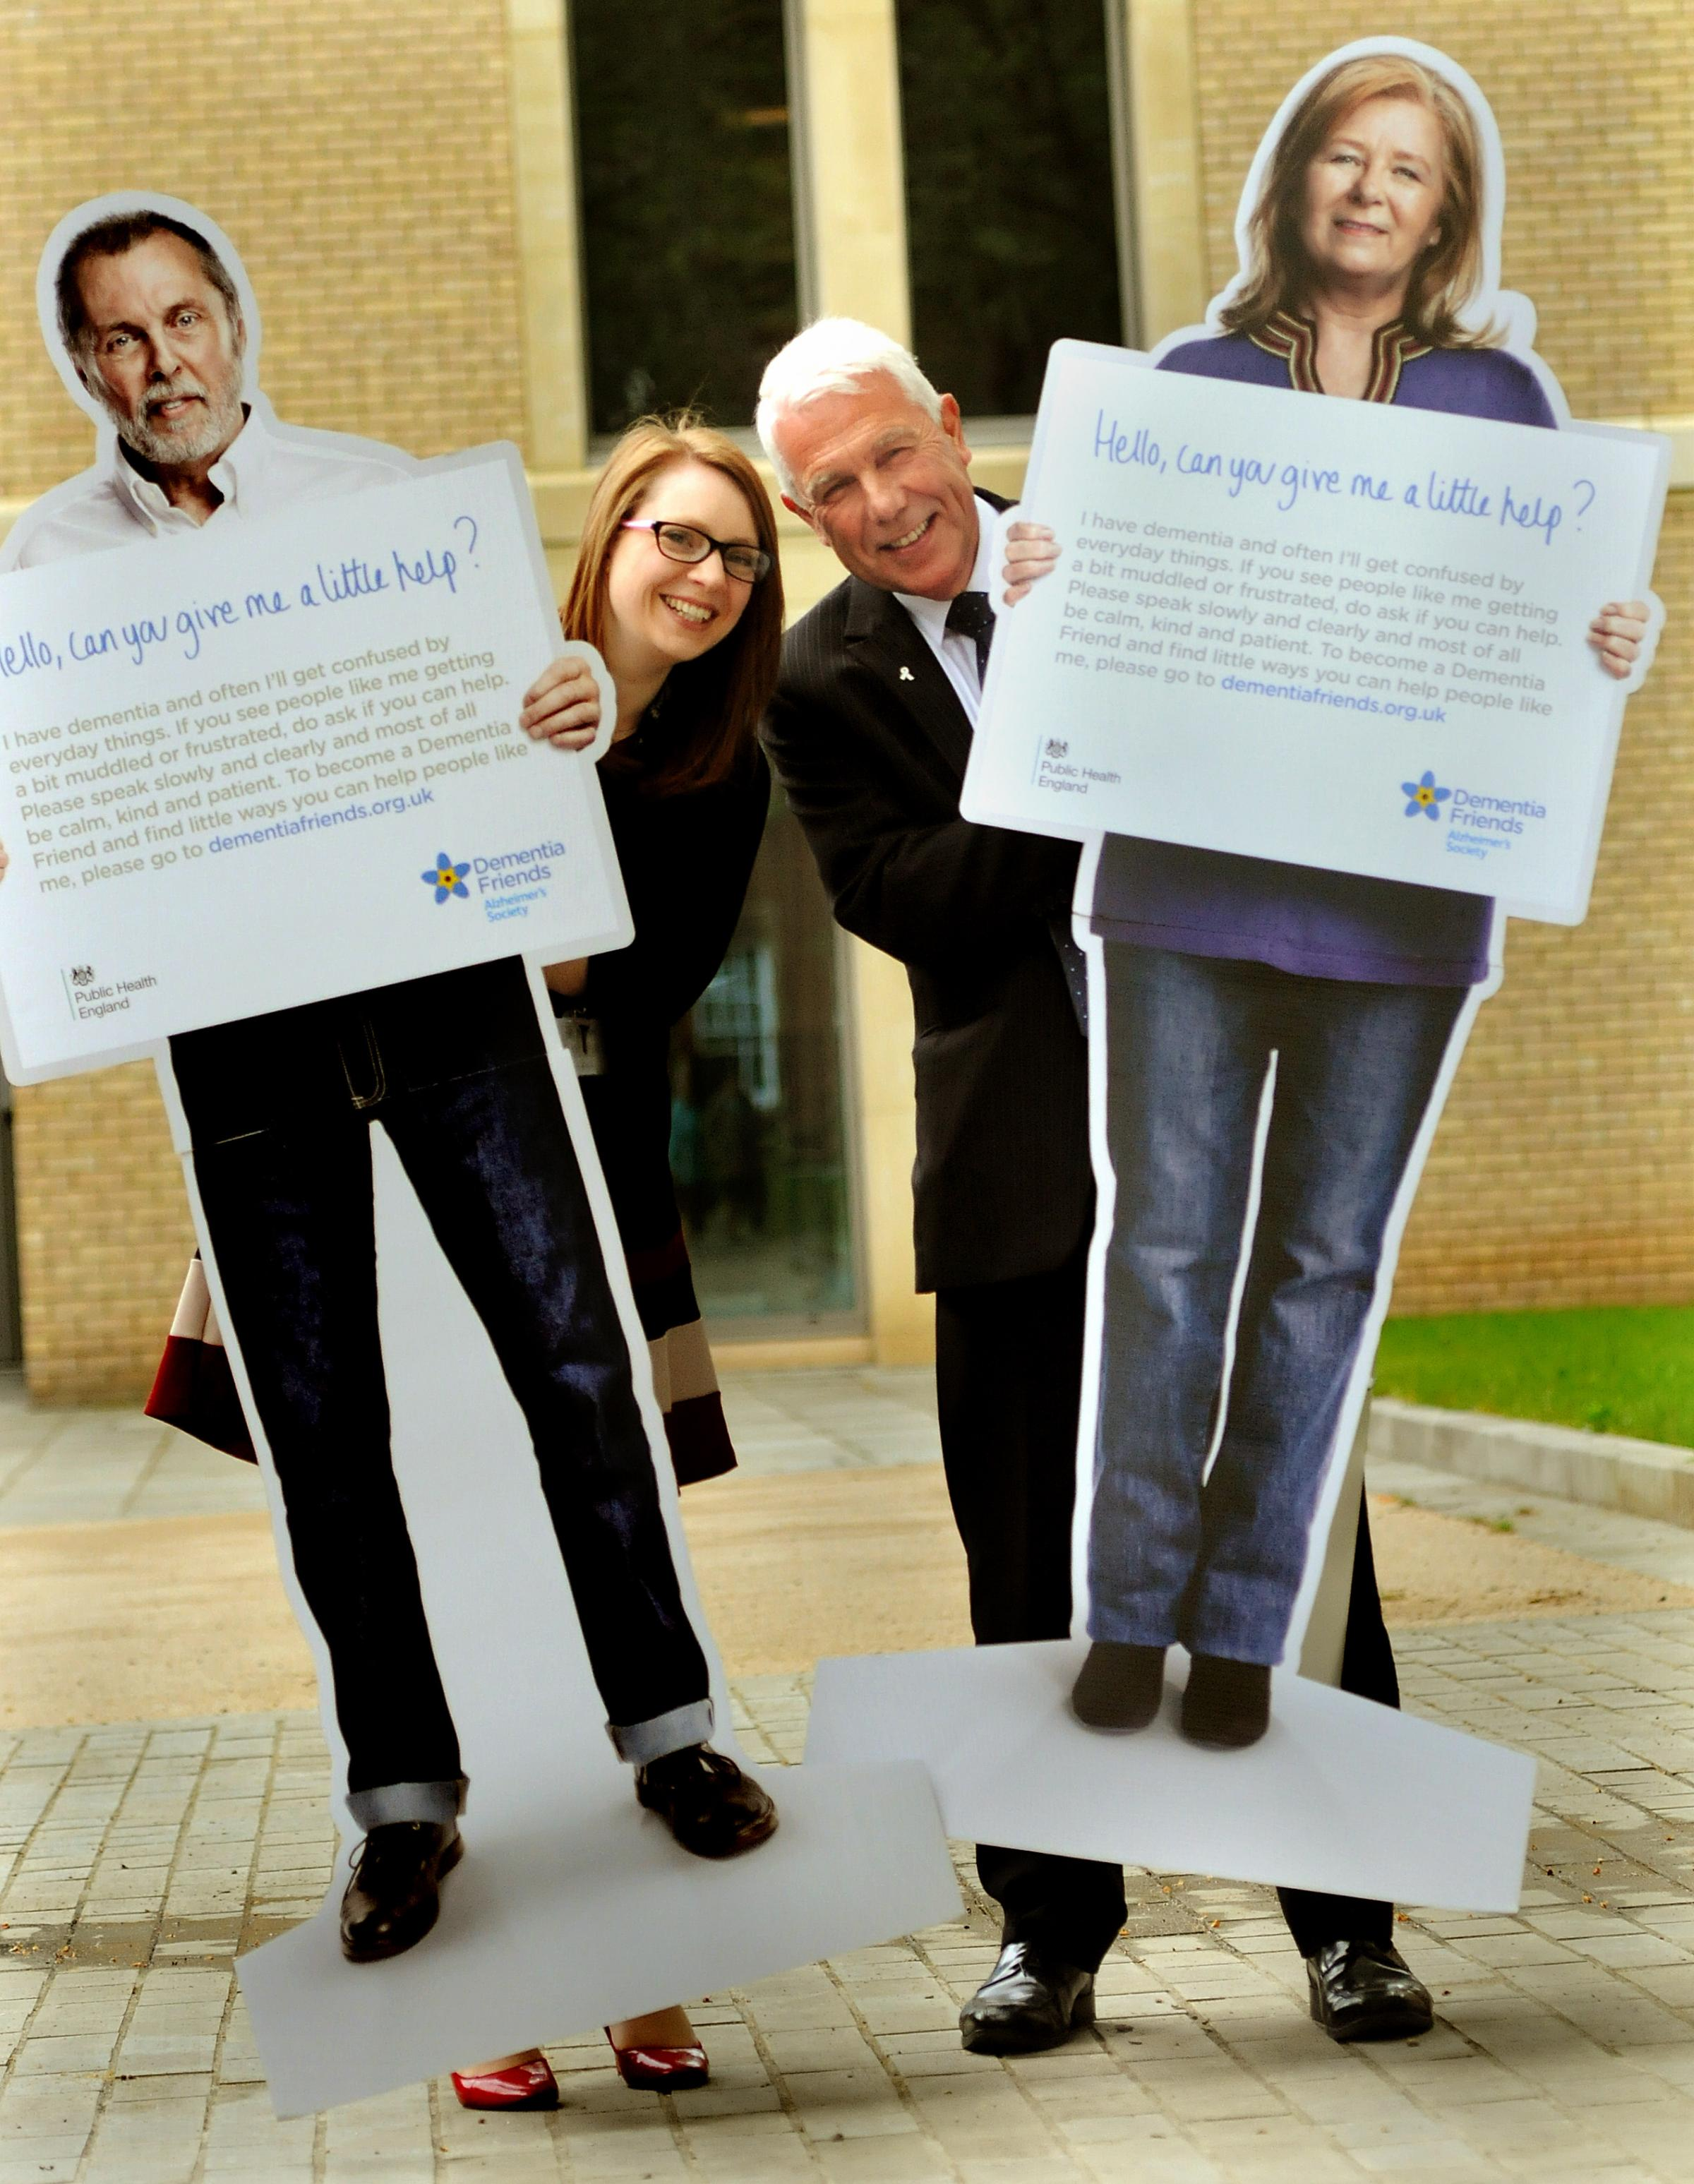 Dr Paul Edmondson-Jones and Cllr Linsay Cunningham-Cross at the launch of the Dementia Friends campaign with two of 12 life-sized cut-outs